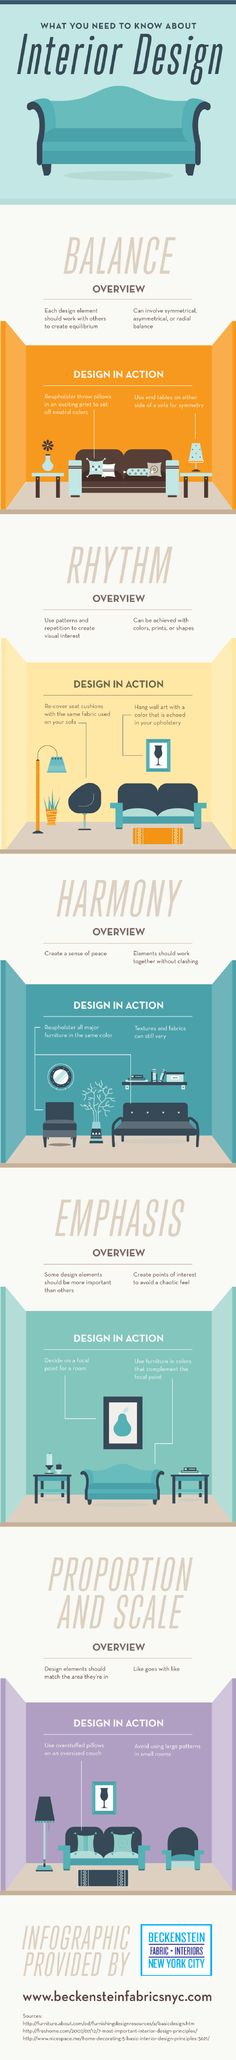 What You Need To Know About Interior Design 5216b54629846 Elements IdeasDesign Styles